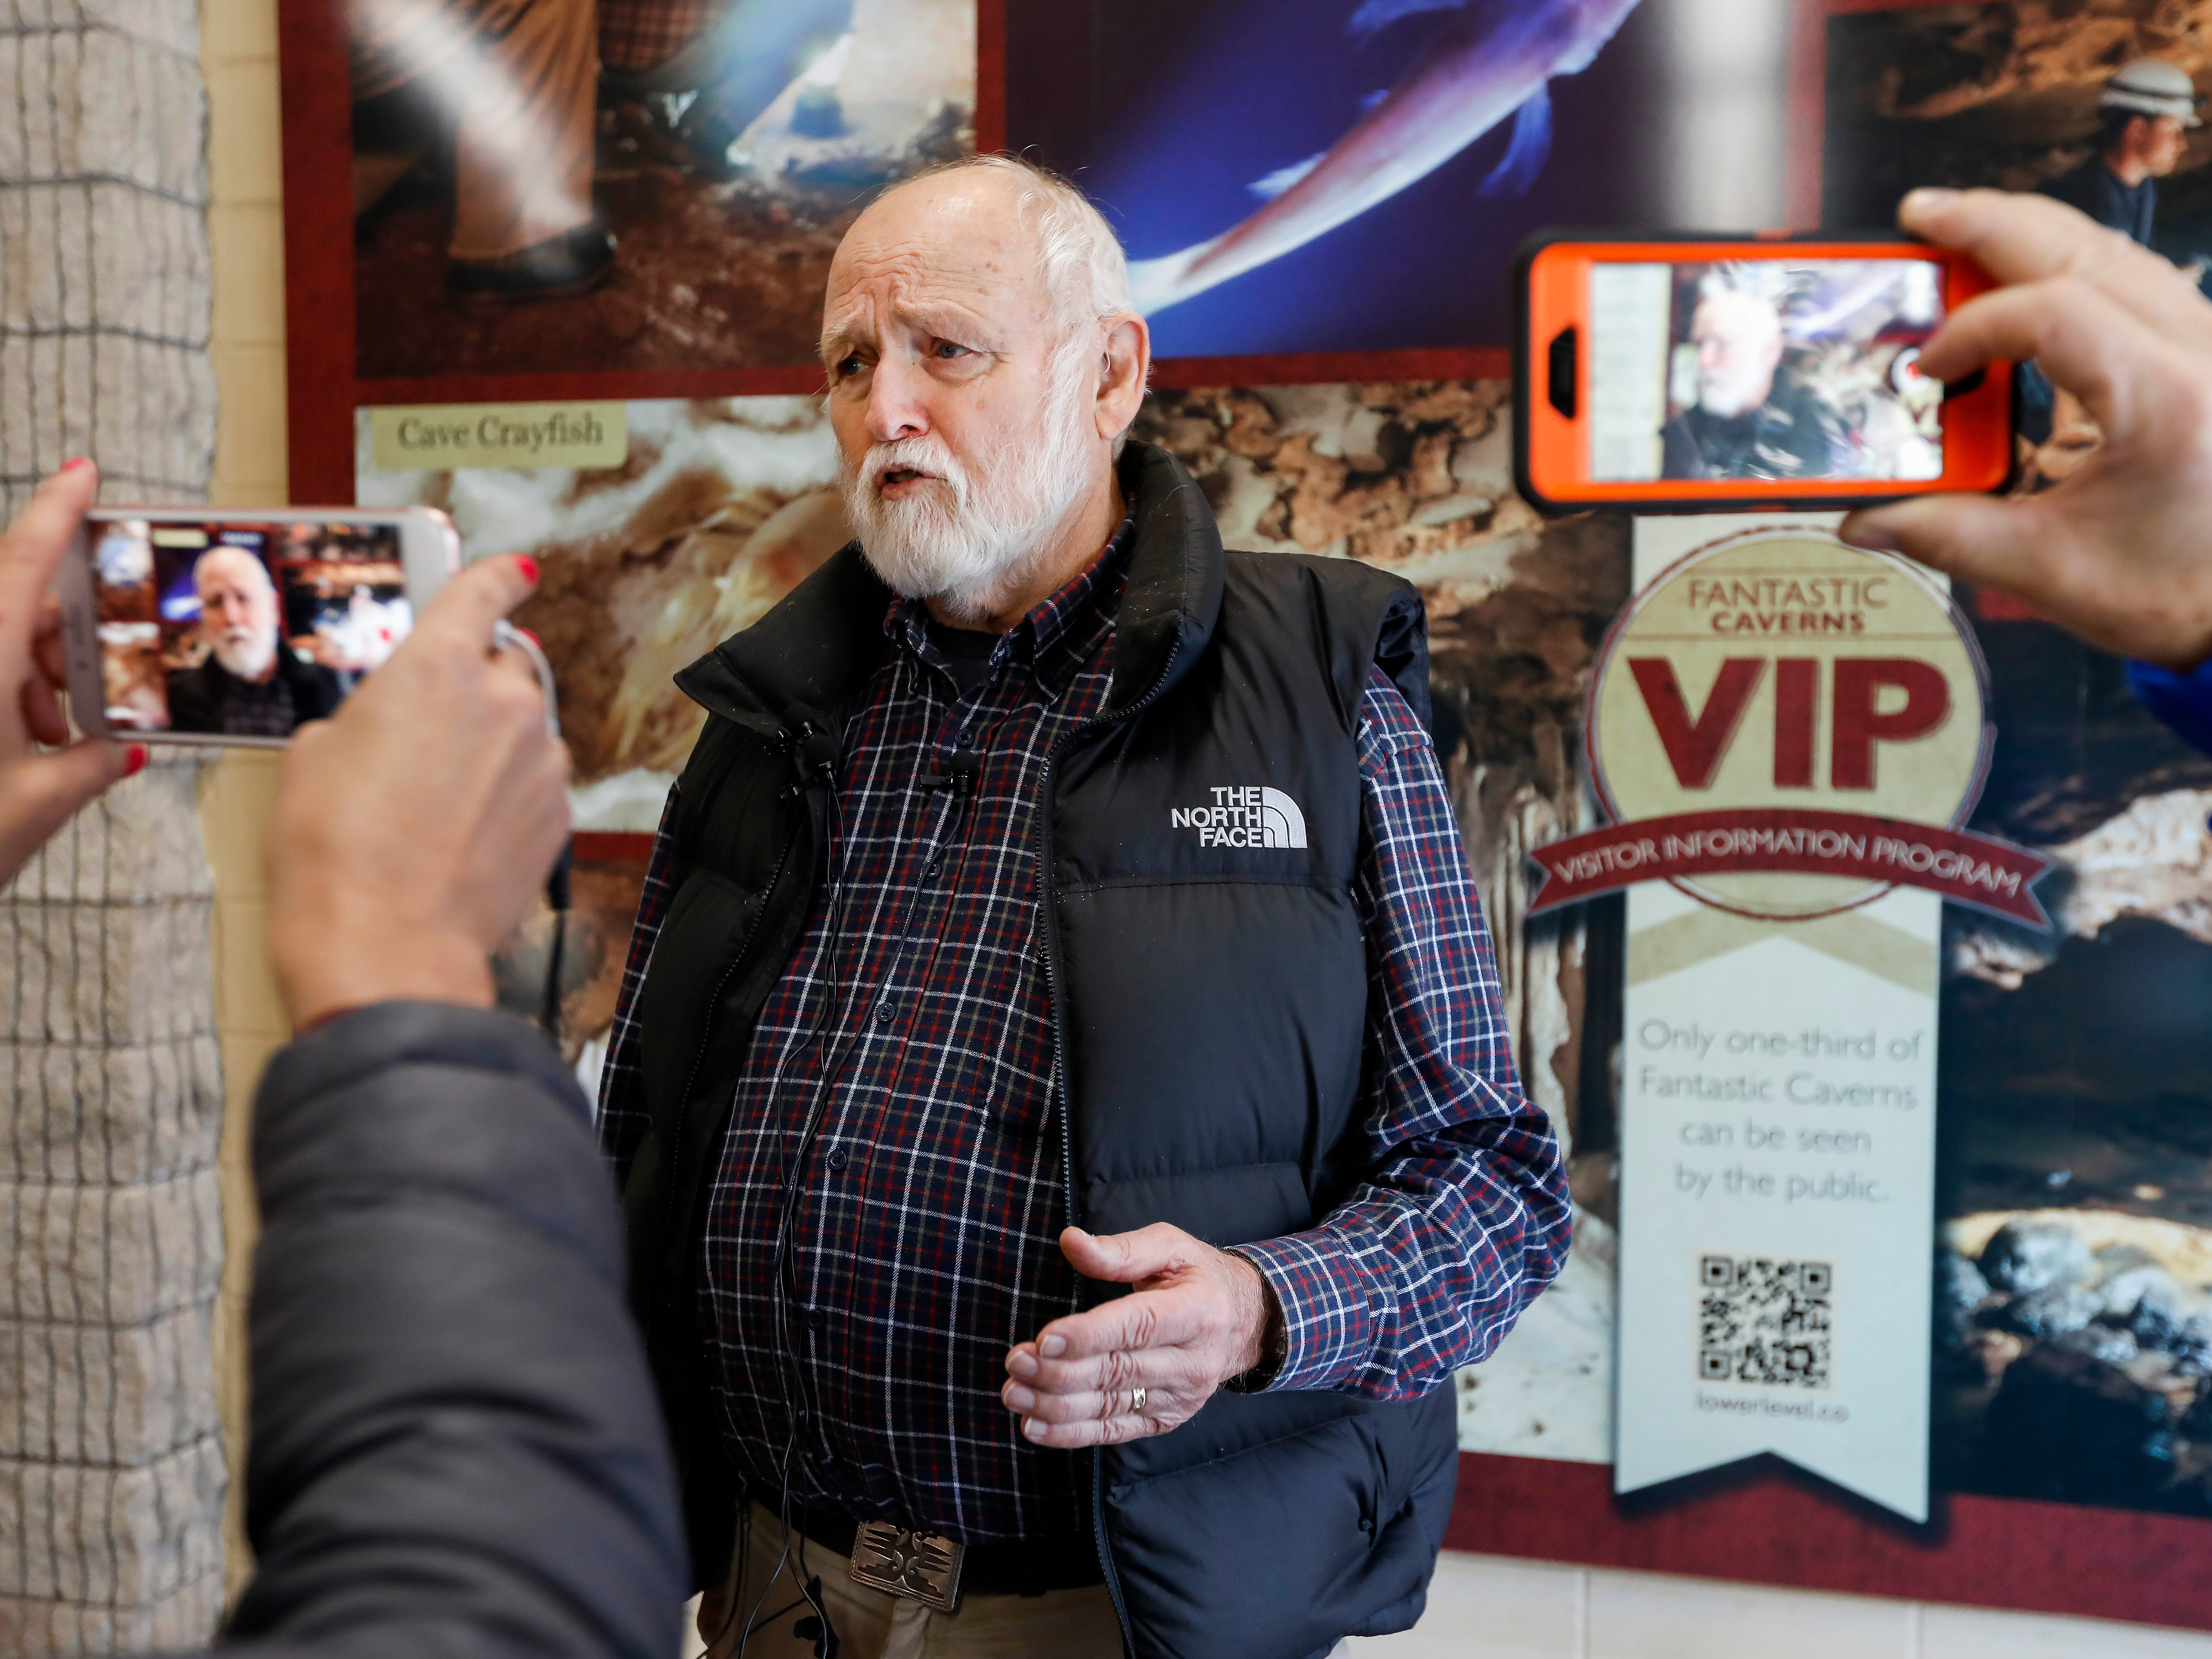 Tom Aley, founder of Ozark Underground Laboratory, talks to the media about his work monitoring  and removing the trichloroethylene (TCE) vapors at Fantastic Caverns.